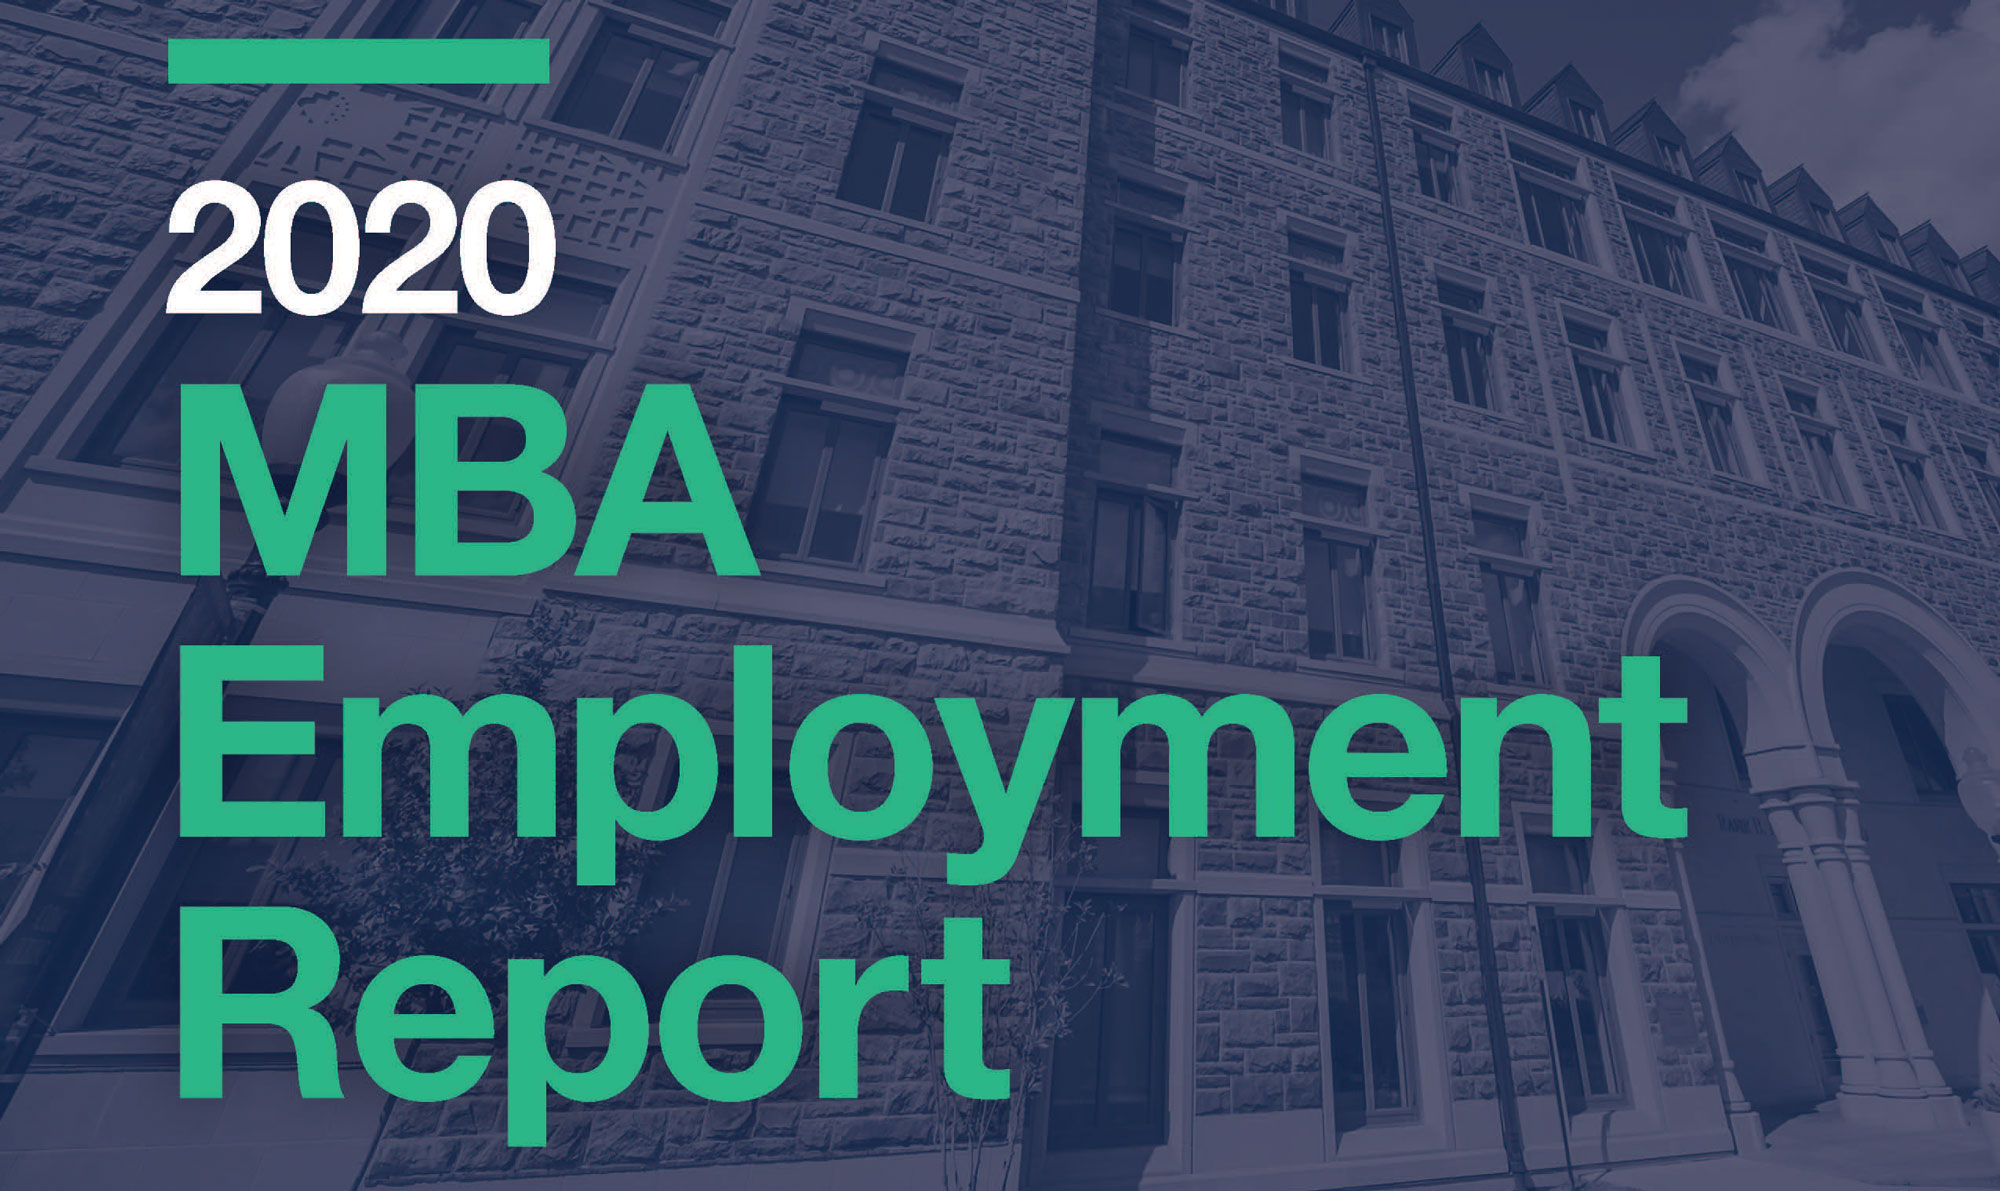 2020 MBA Employment Report